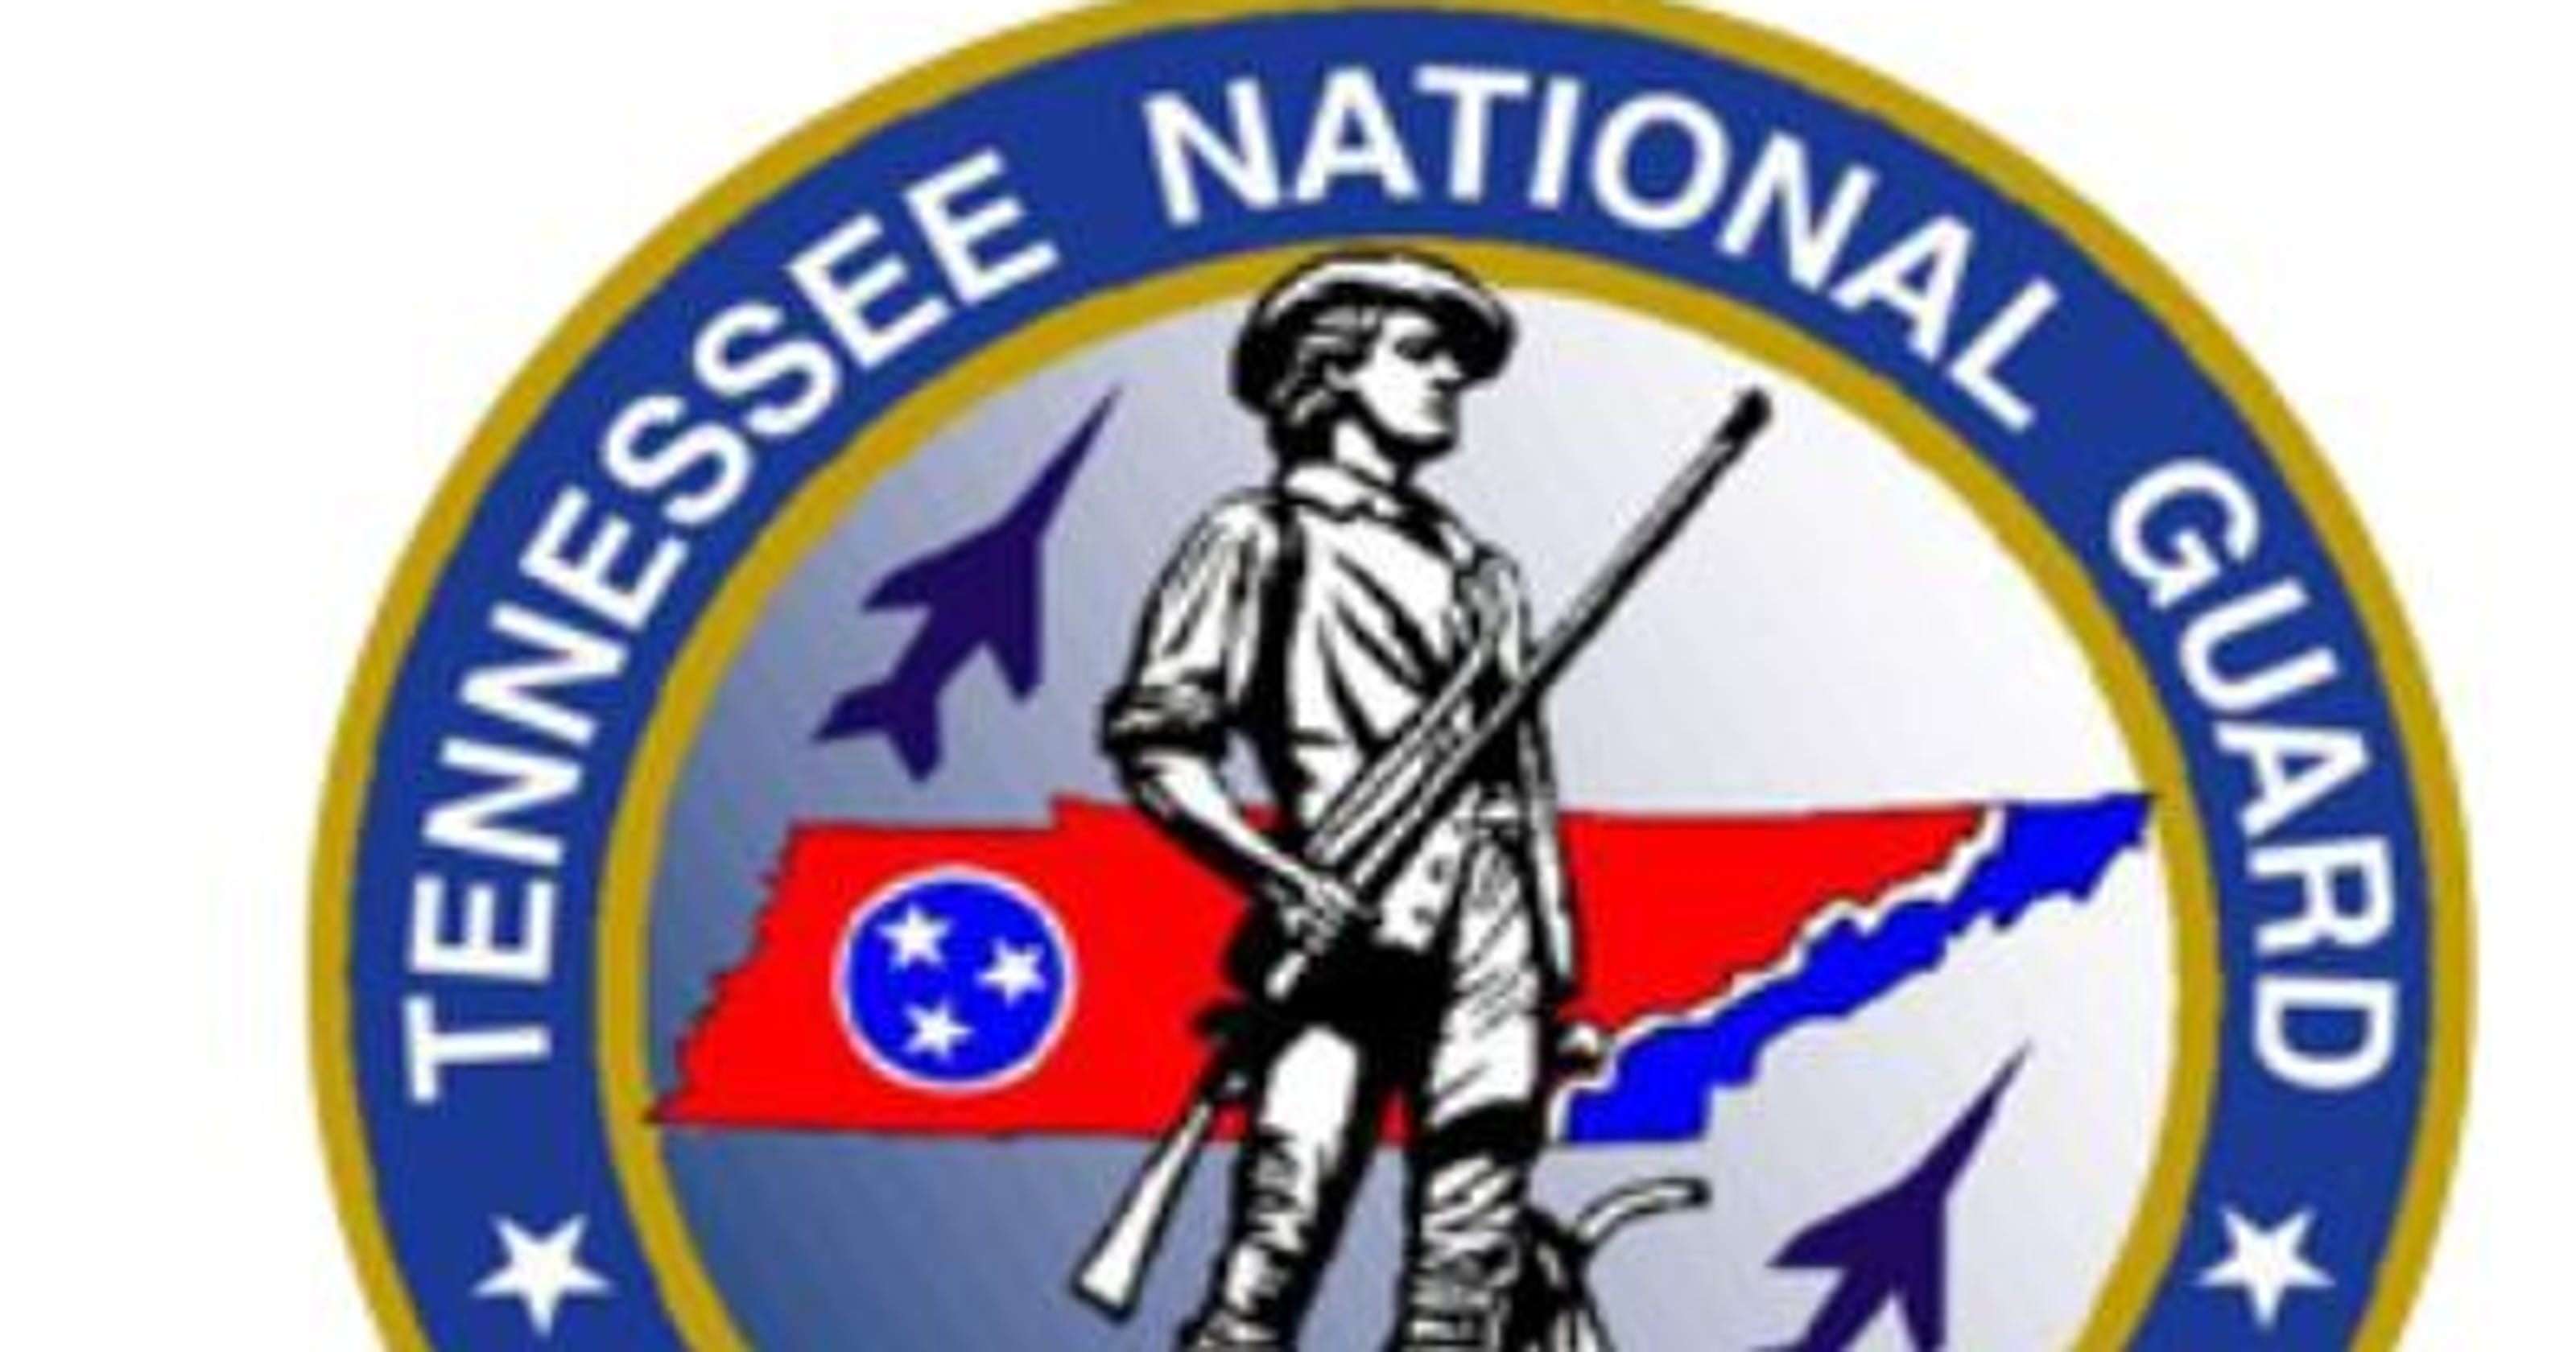 Tennessee National Guard Soldier Fatally Injured